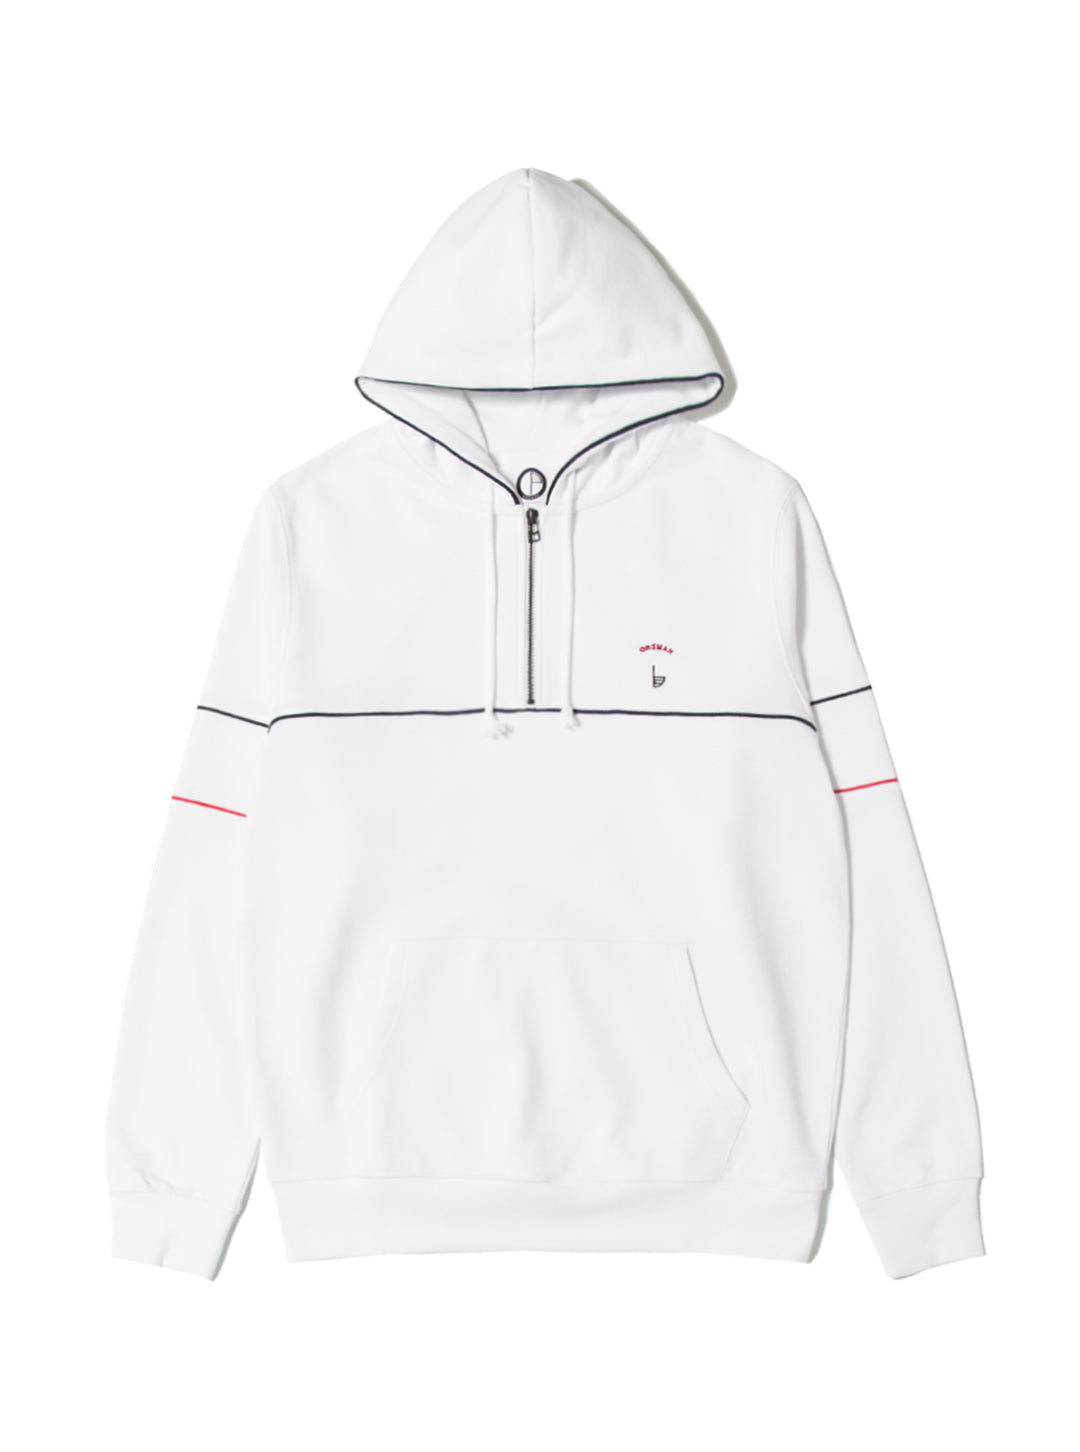 Orsman Quarter Zip Hood White